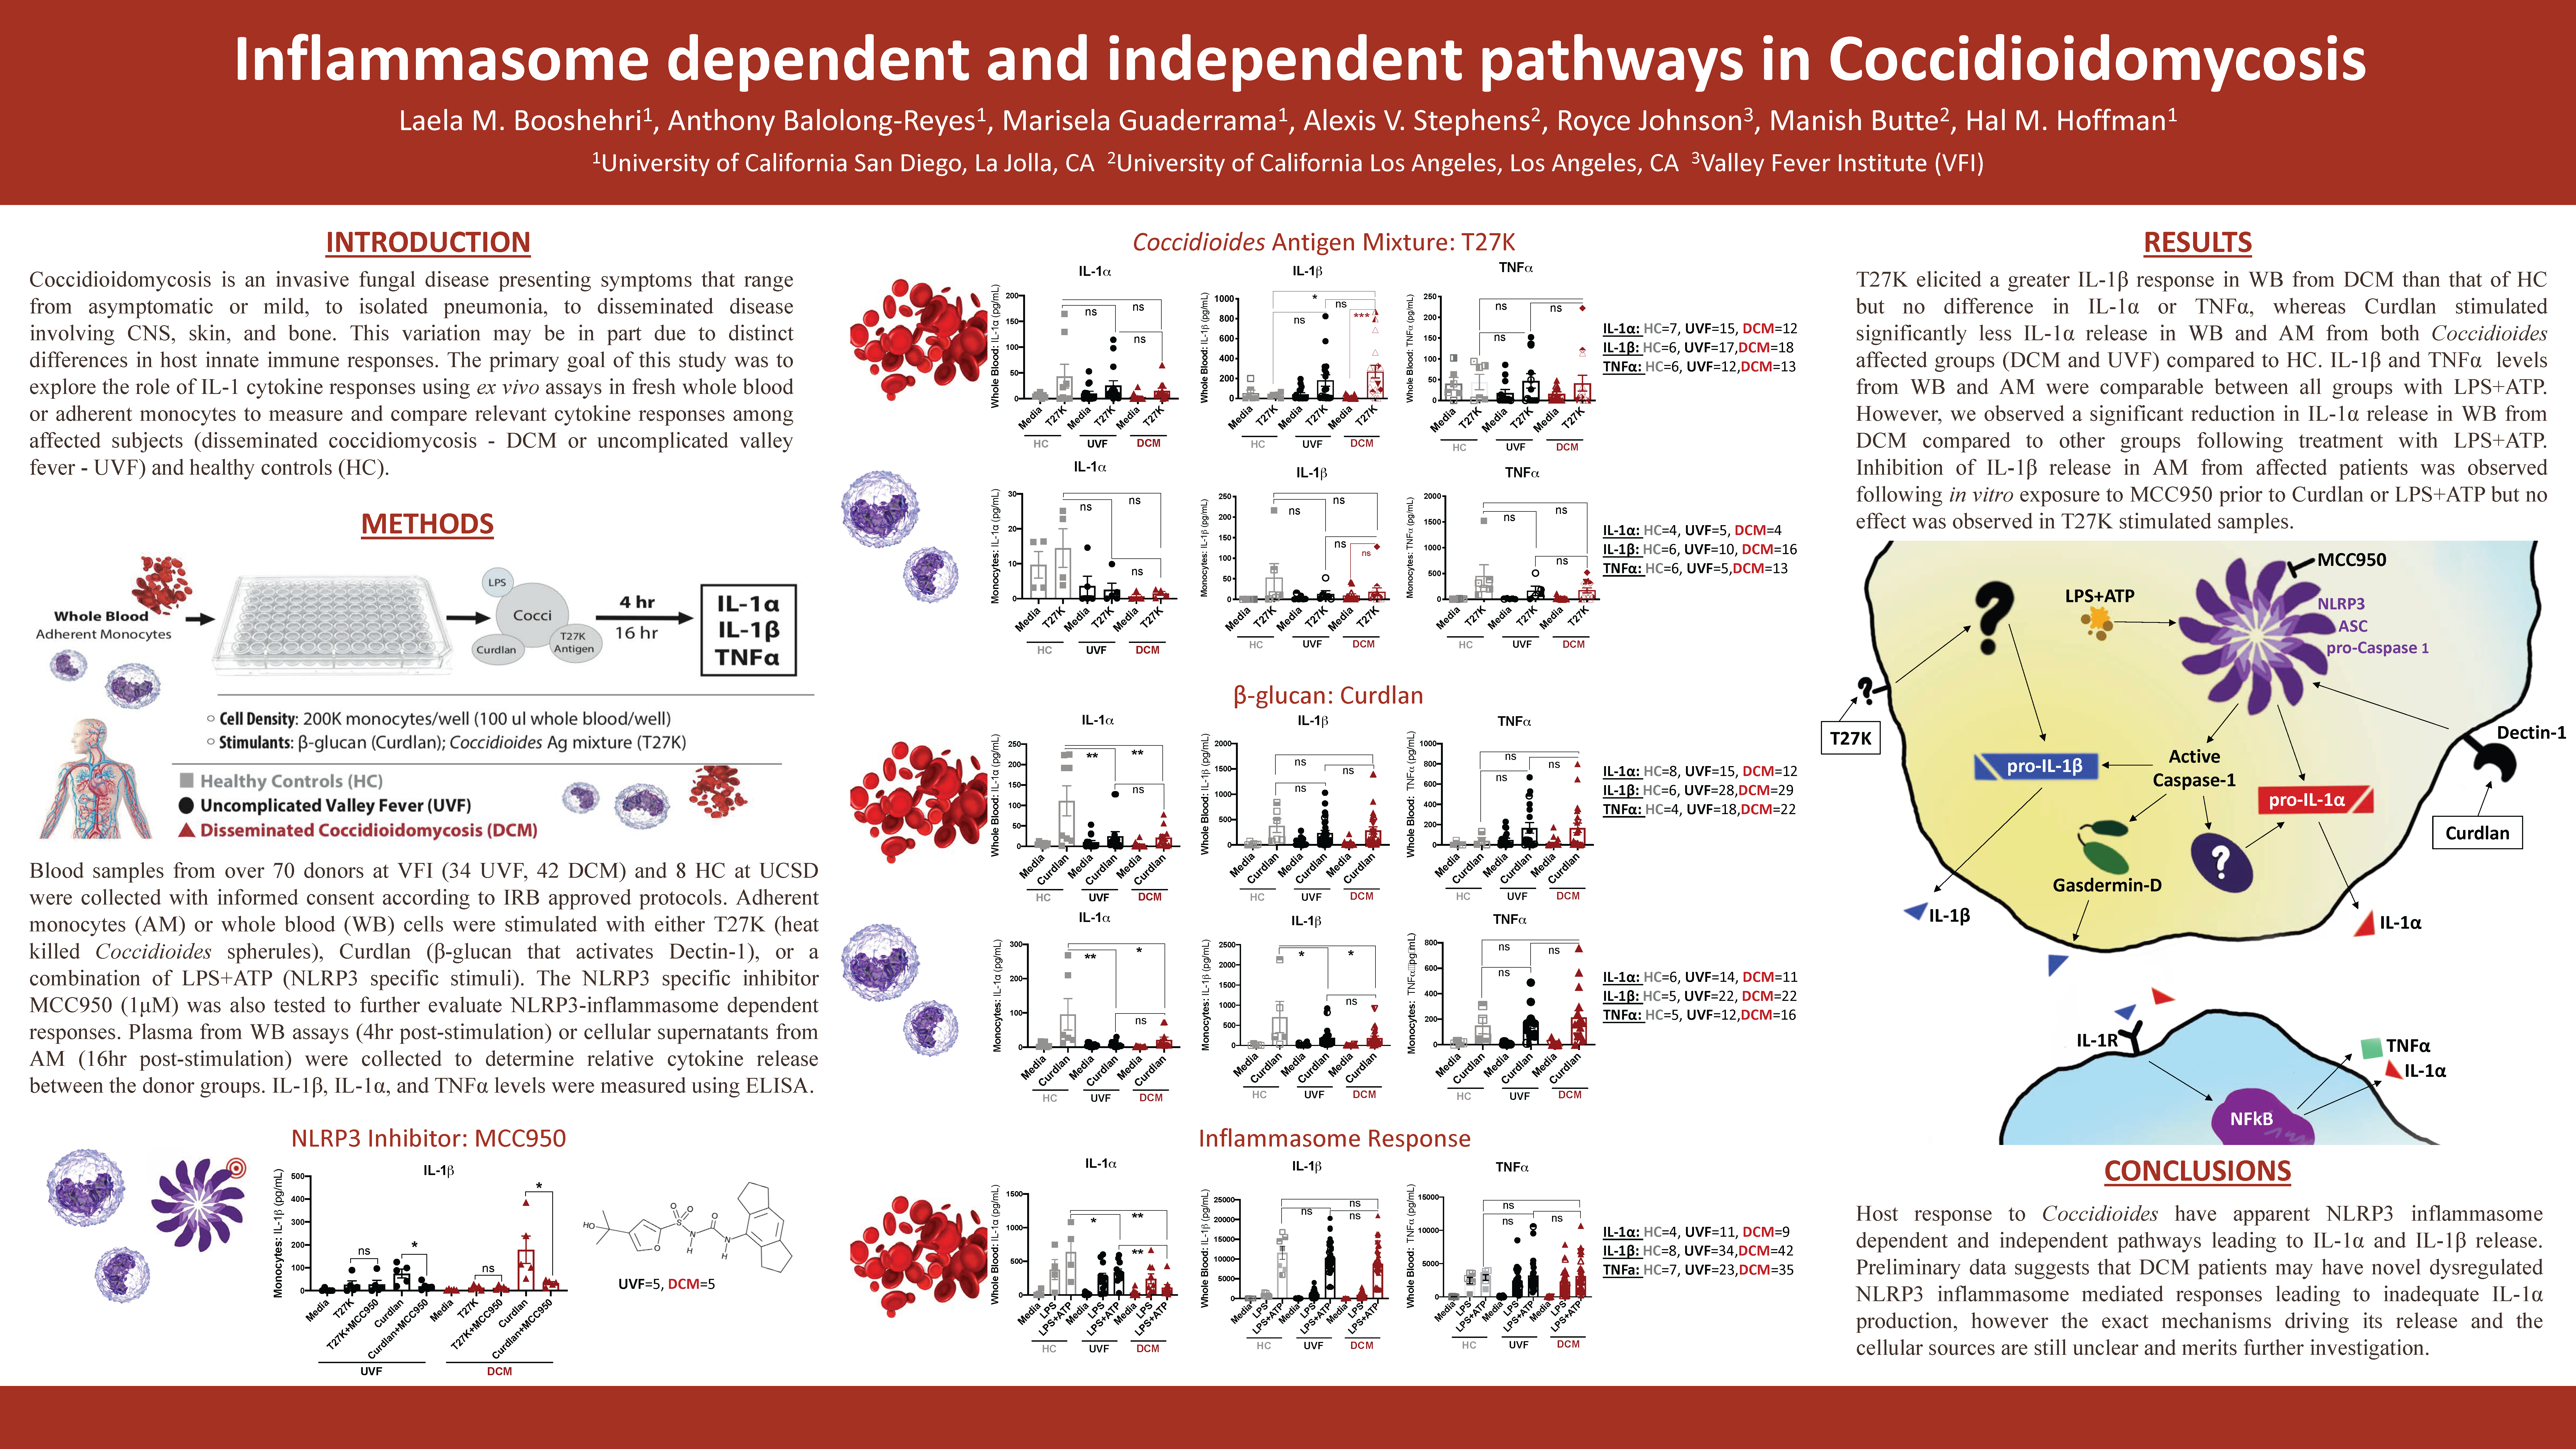 Inflammasome dependent and independent pathways in Coccidioidomycosis